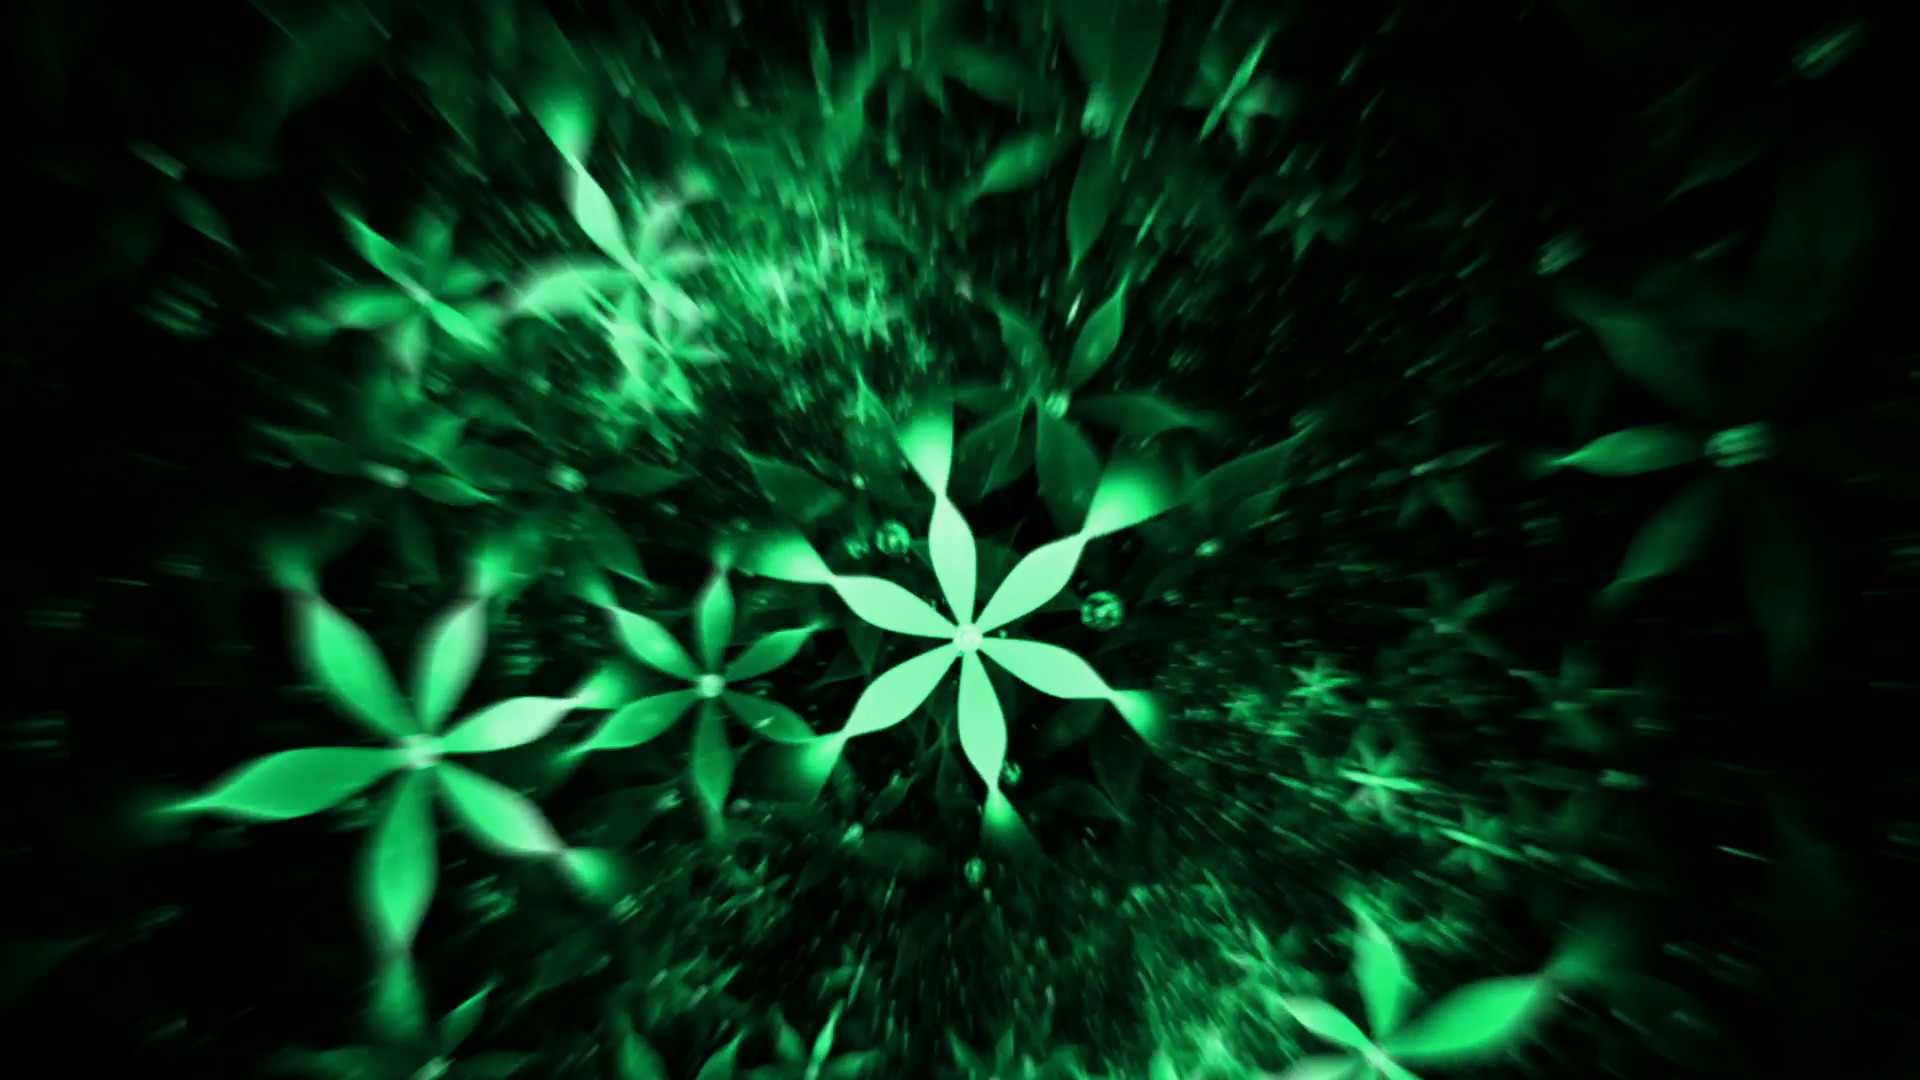 1920x1080 Whirlpool Of Green Flowers, Floral Background - floral background, green  flowers in circular motion